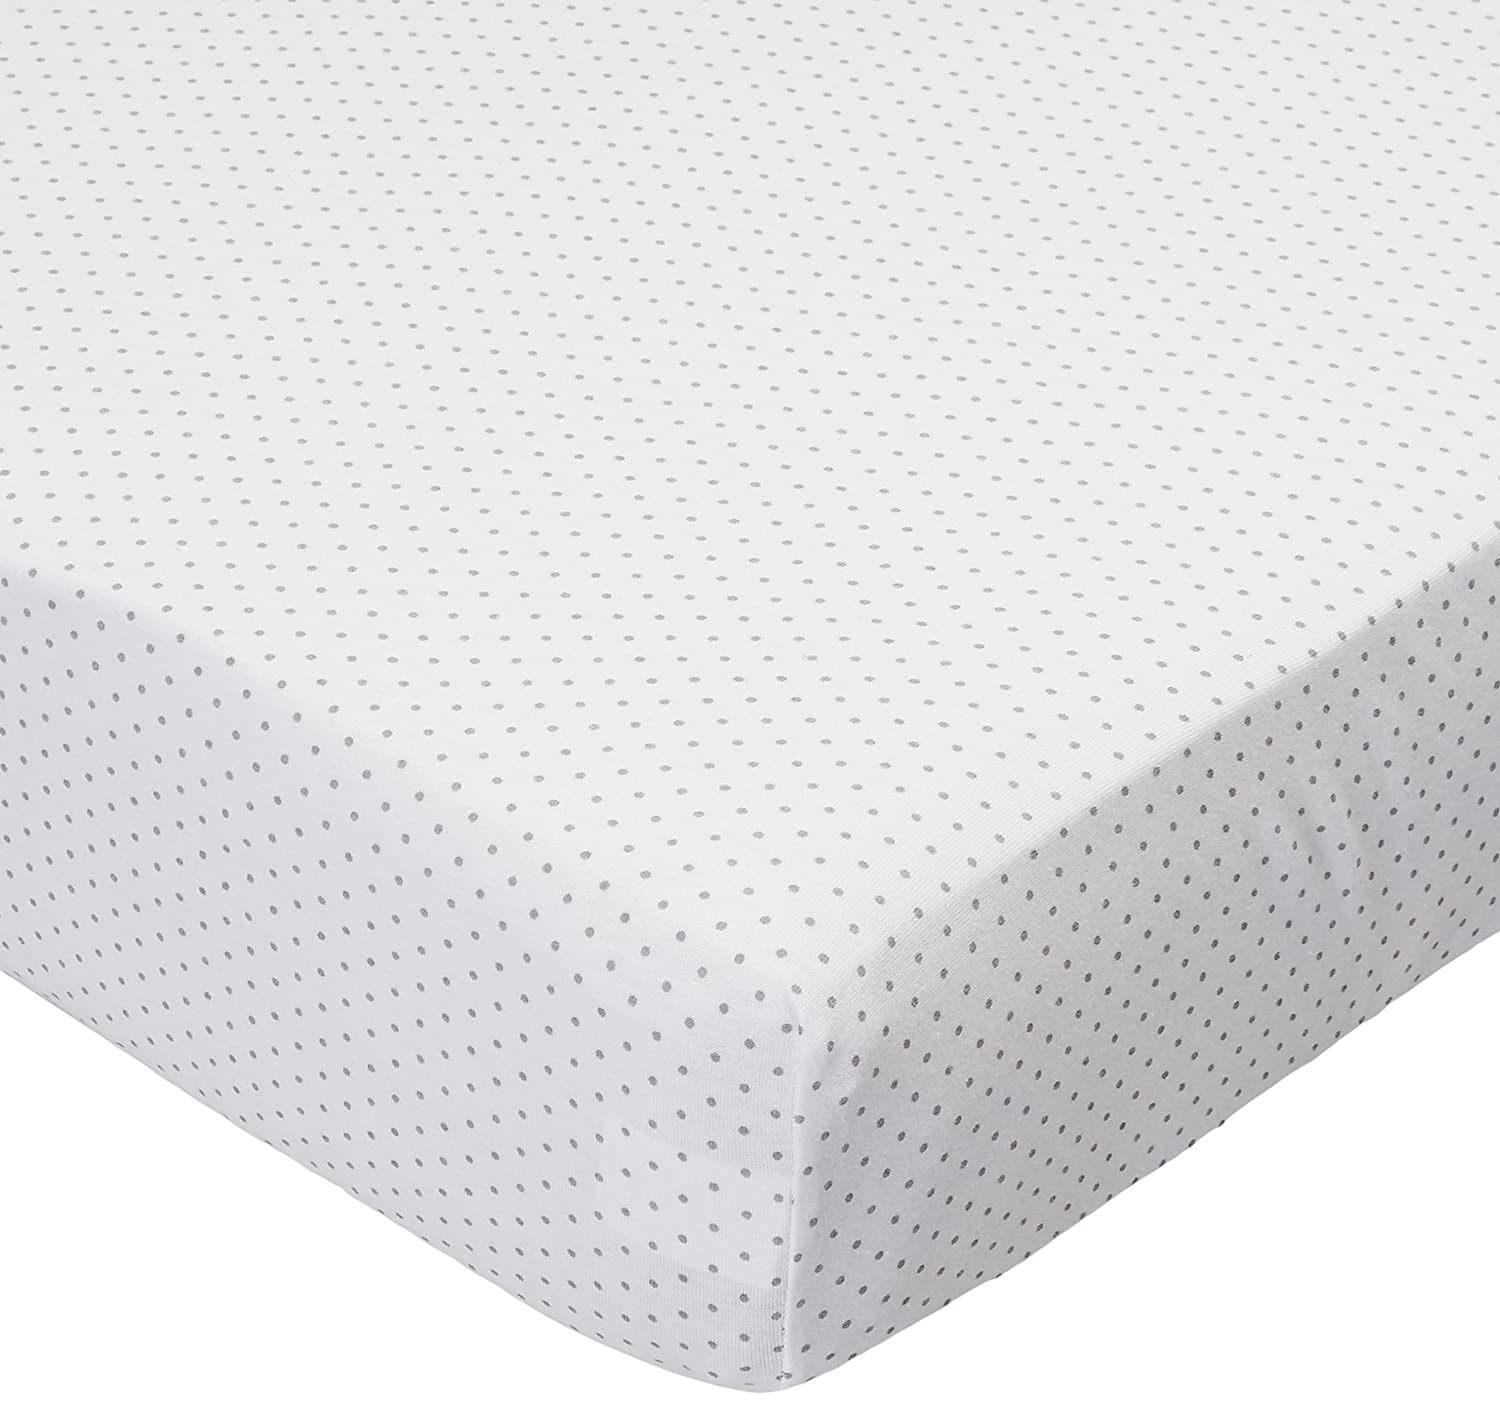 b65f8496fcf Amazon.com   SheetWorld Fitted 100% Cotton Jersey Playard Sheet Fits  BabyBjorn Travel Crib Light